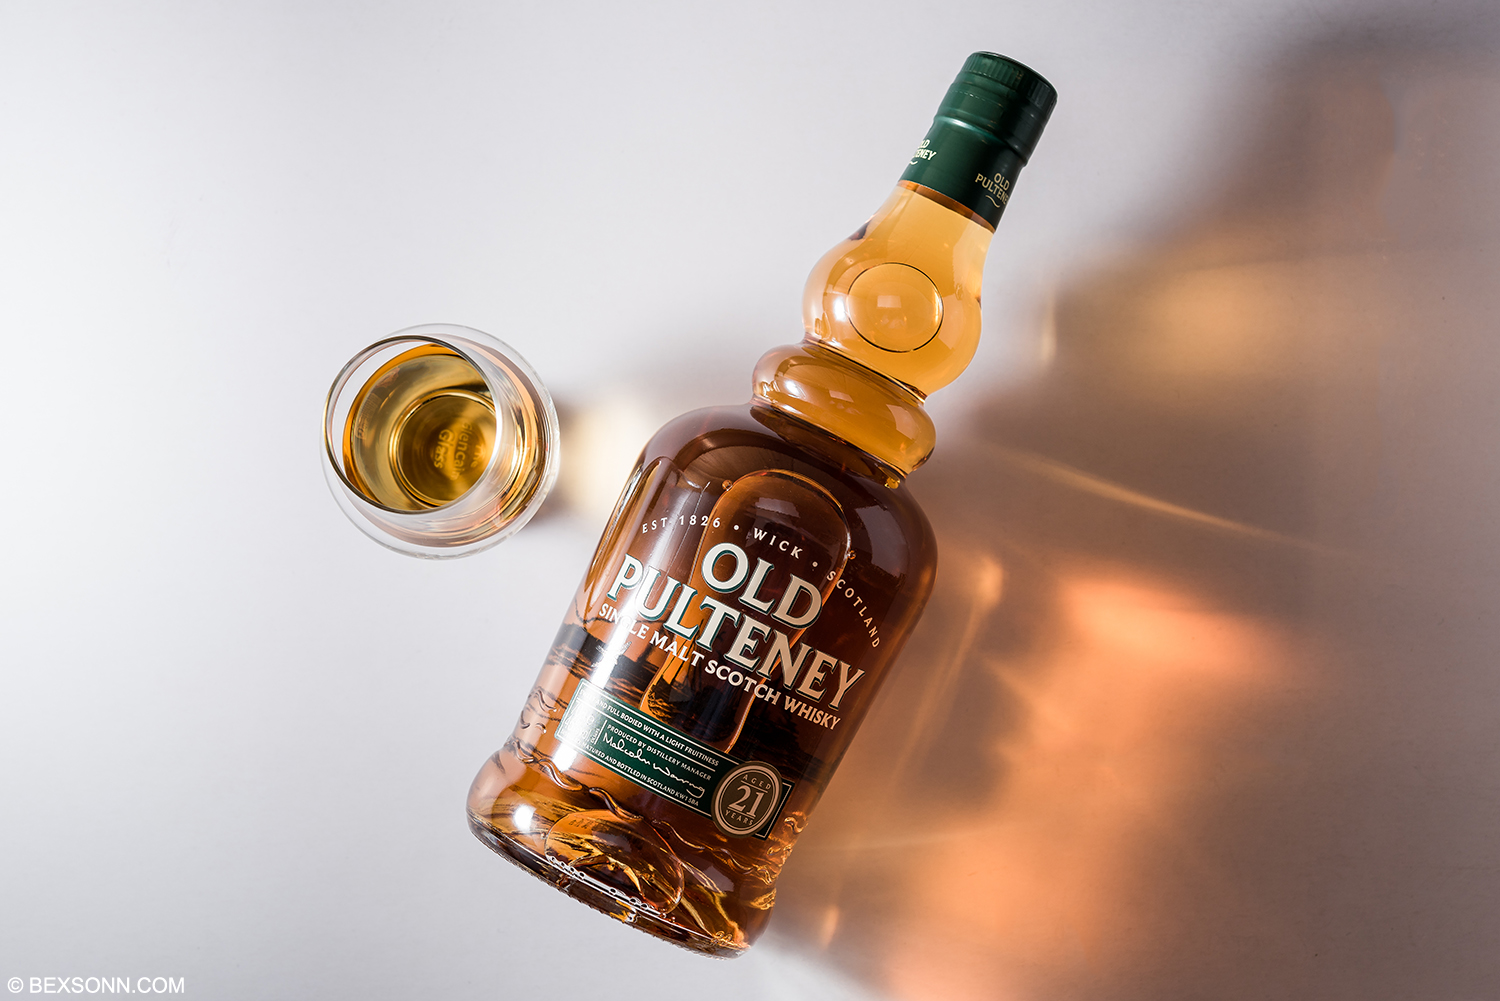 old pulteney 21